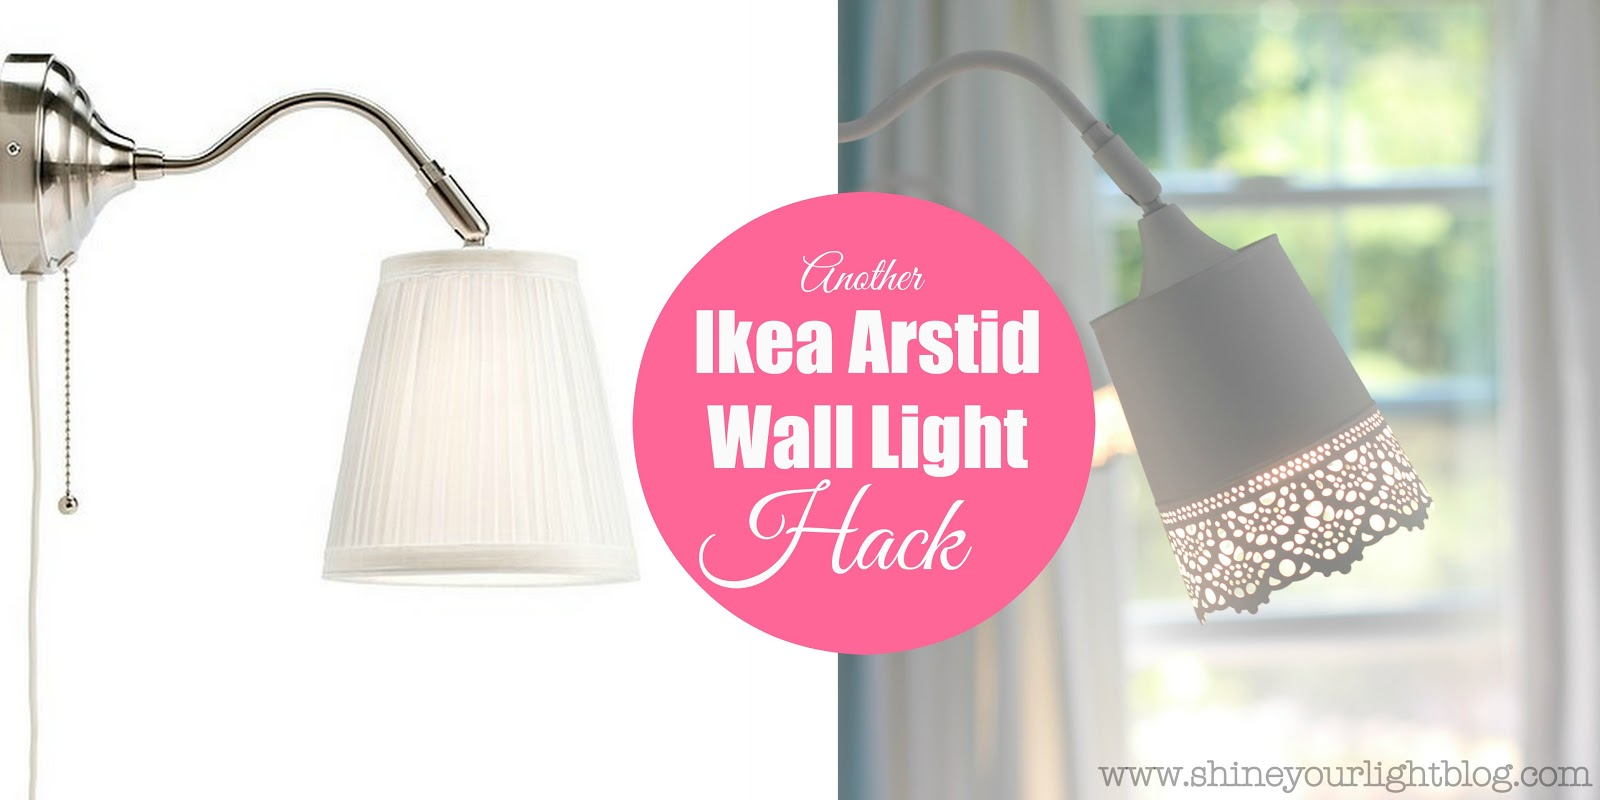 Ikea Lighting Hack Custom another Ikea Arstid Wall Light Hack Shine Your Light Another Ikea Arstid Wall Light Hack Shine Your Light